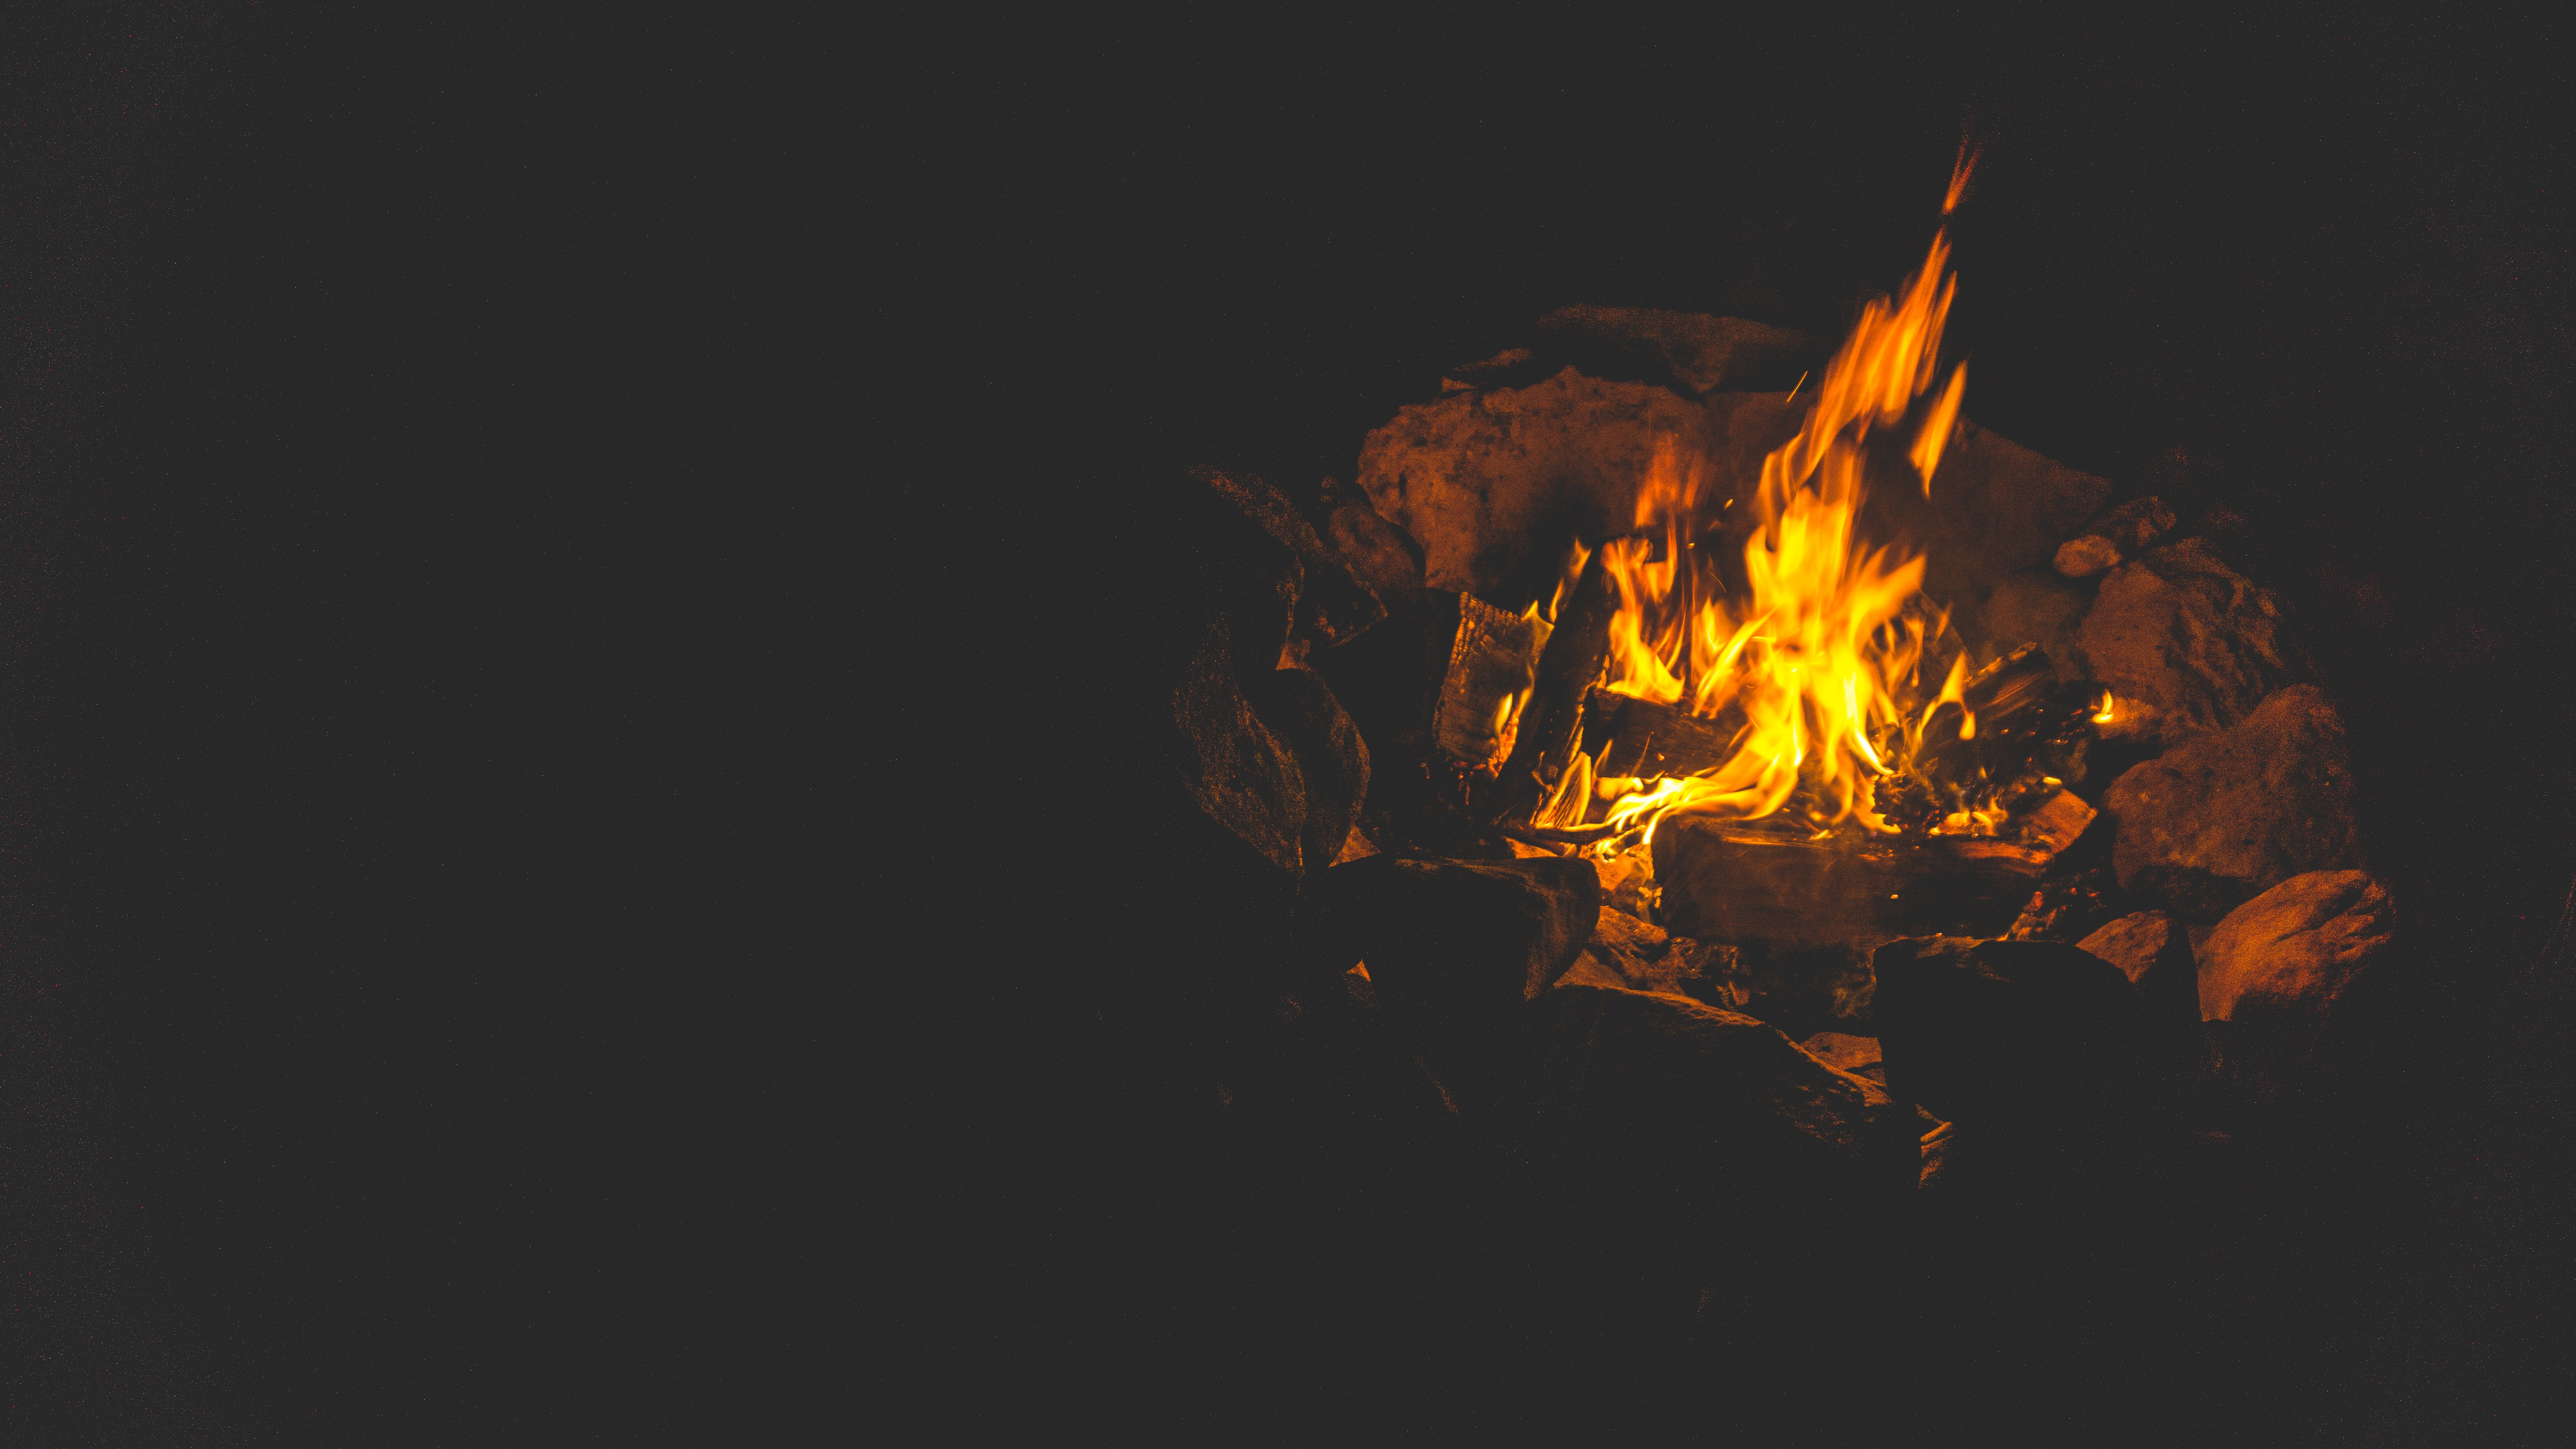 bonfire surrounded by rocks